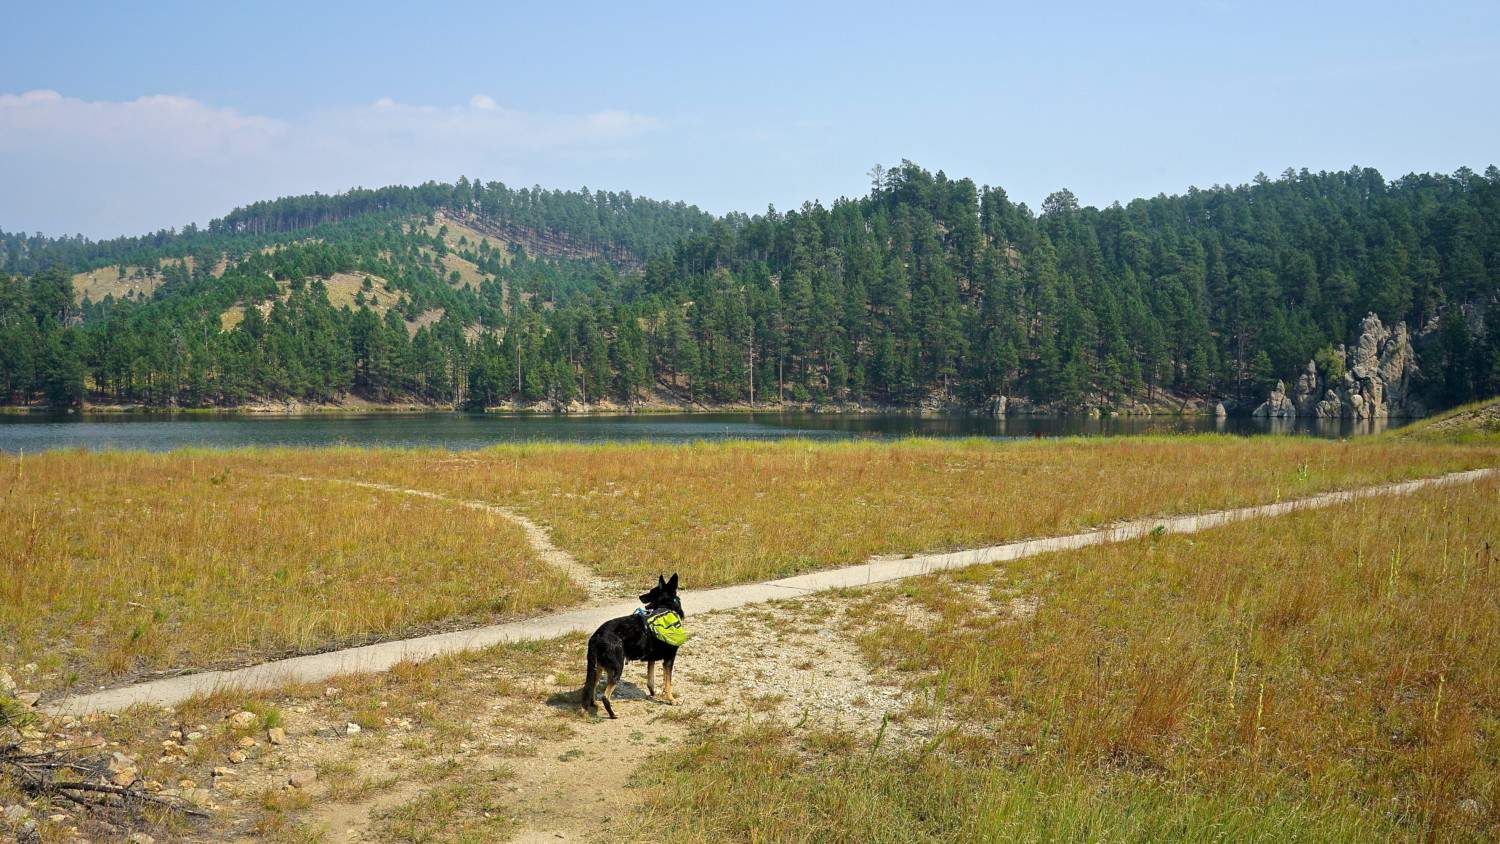 South Dakota's Top Pet Friendly Attraction: Custer State Park | GoPetFriendly.com